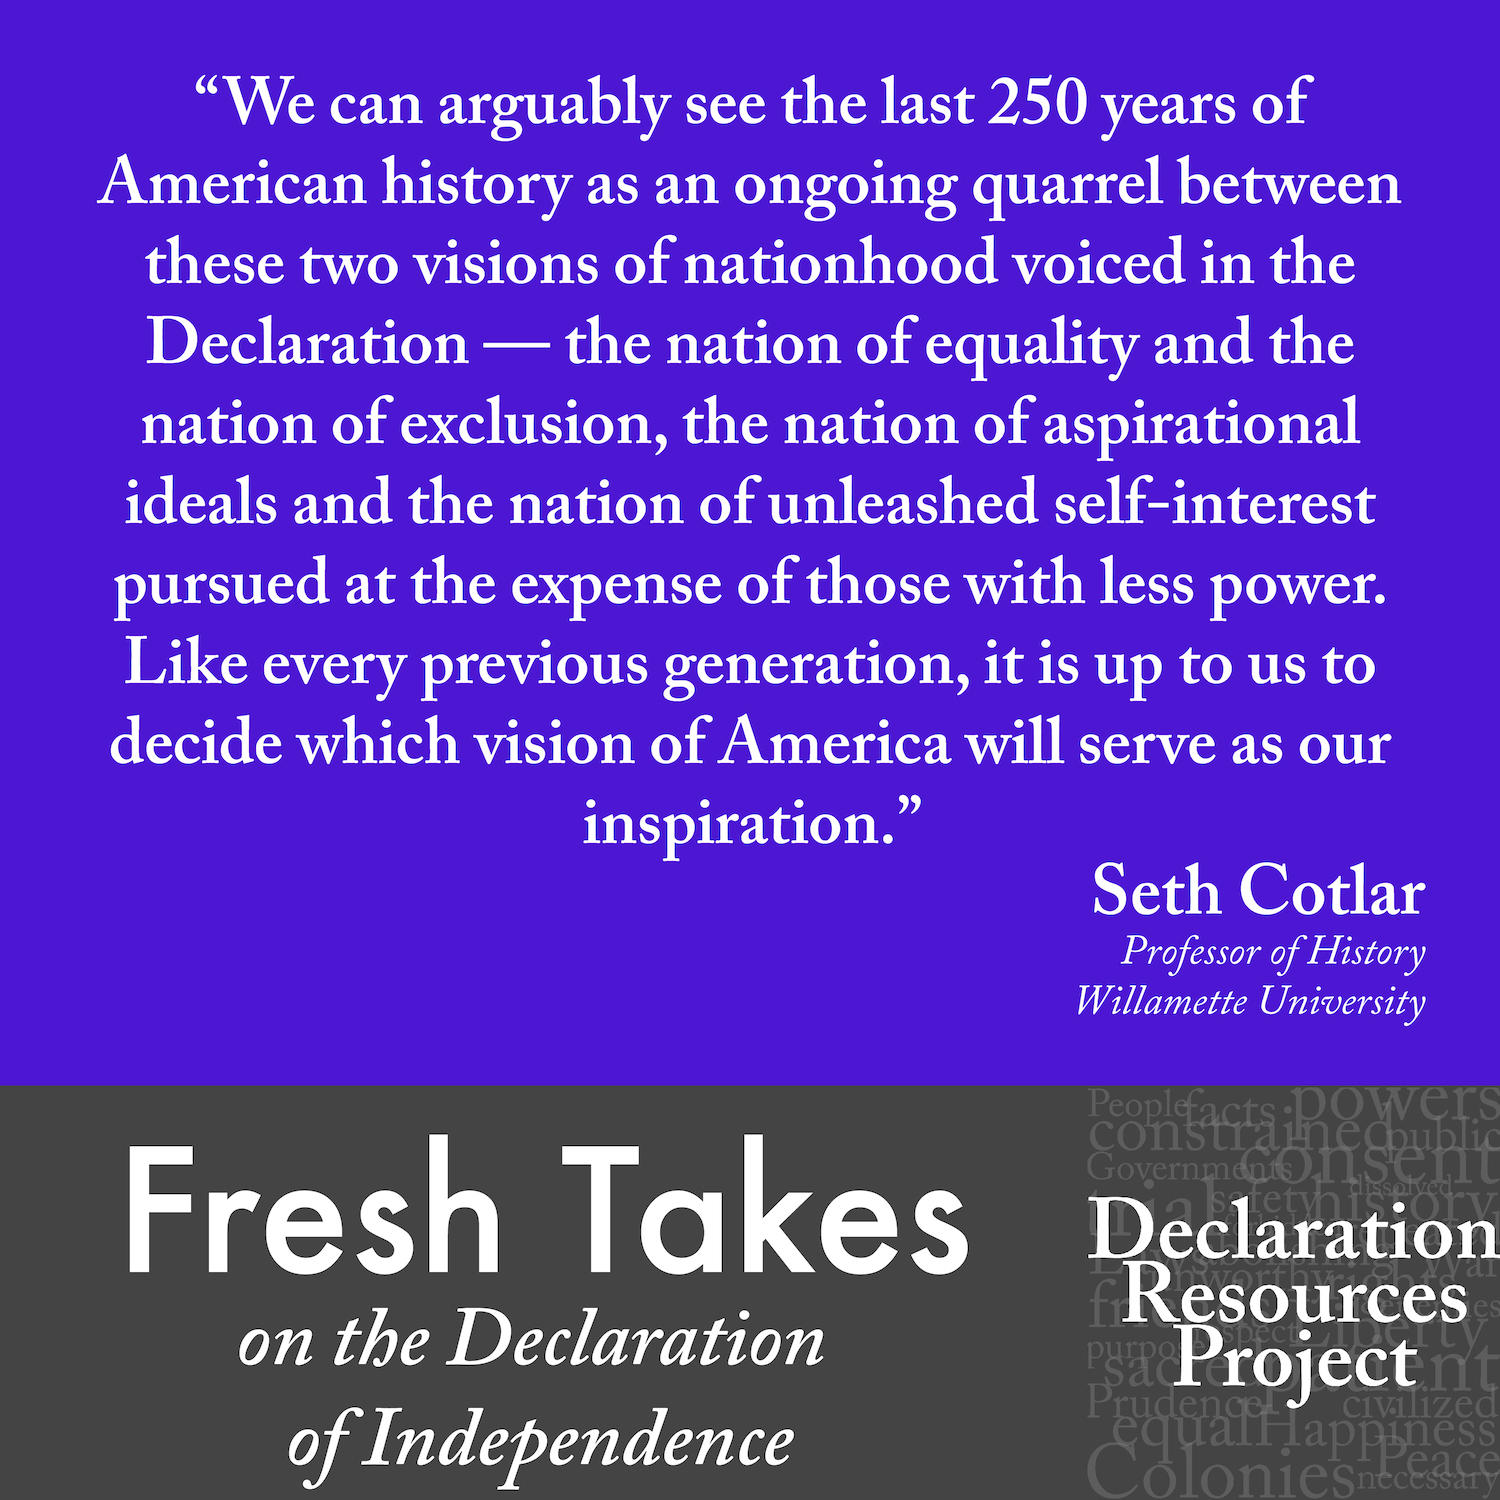 Seth Cotlar's Fresh Take on the Declaration of Independence